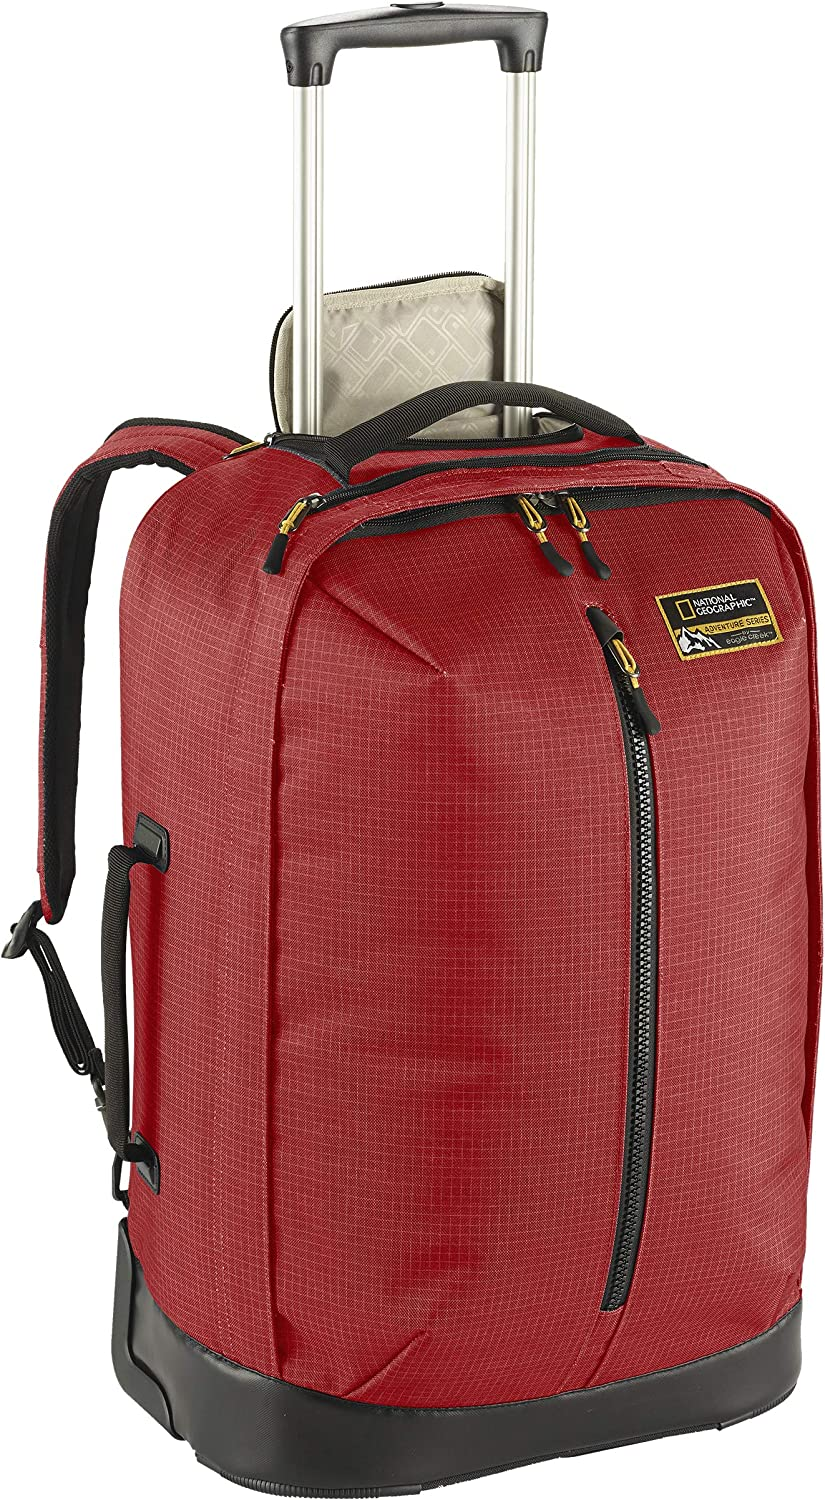 Eagle Creek National Geographic Adventure Convertible Carry-on